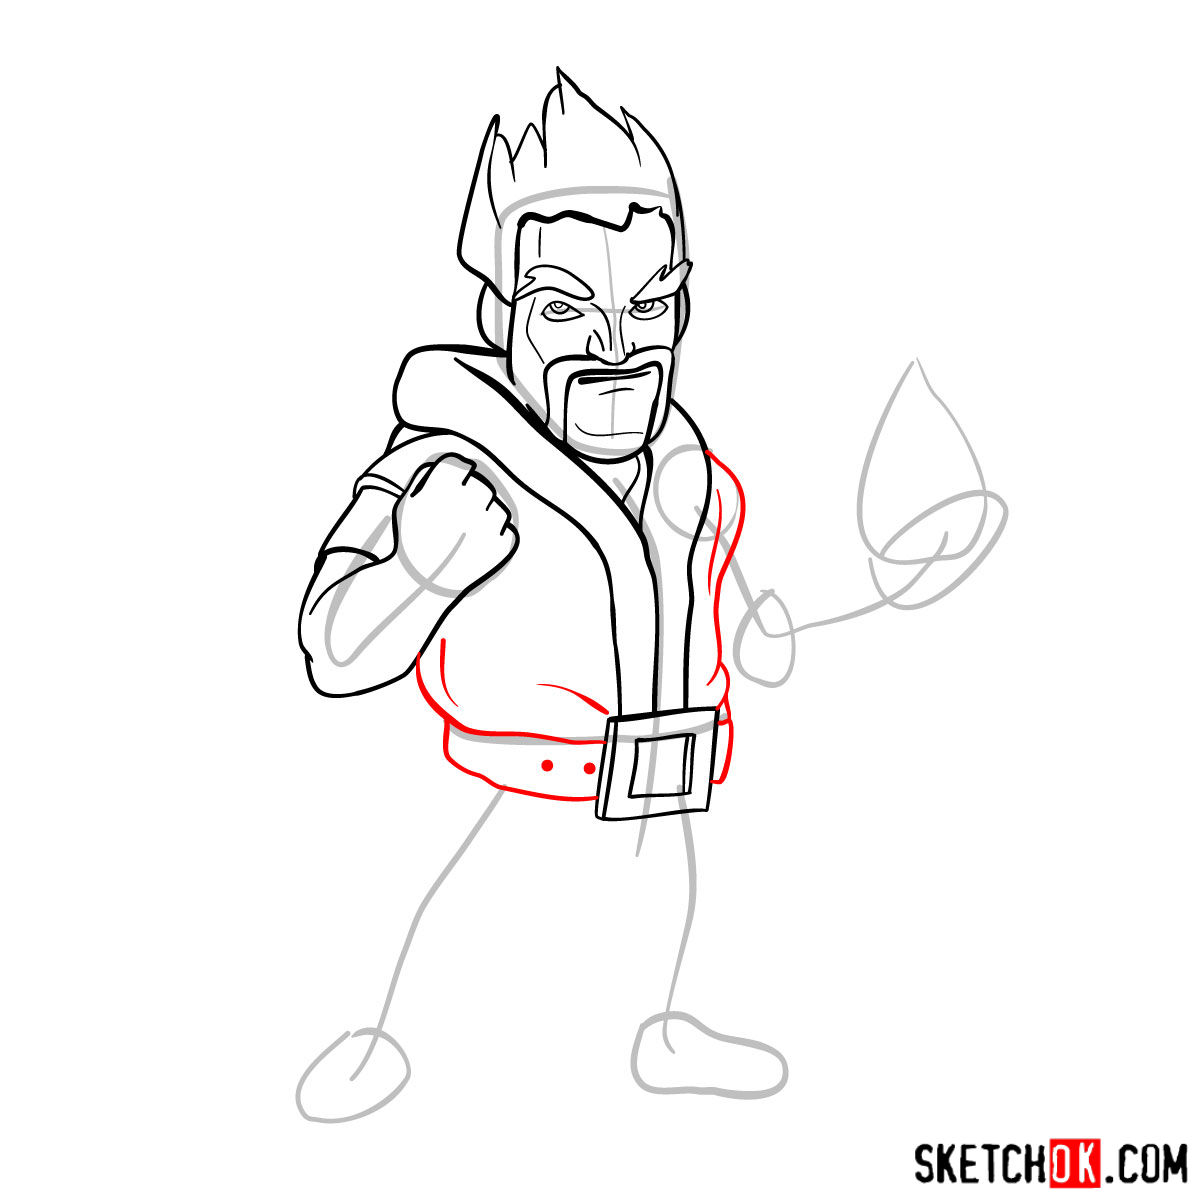 How to draw Ice Wizard from Clash of Clans - step 08